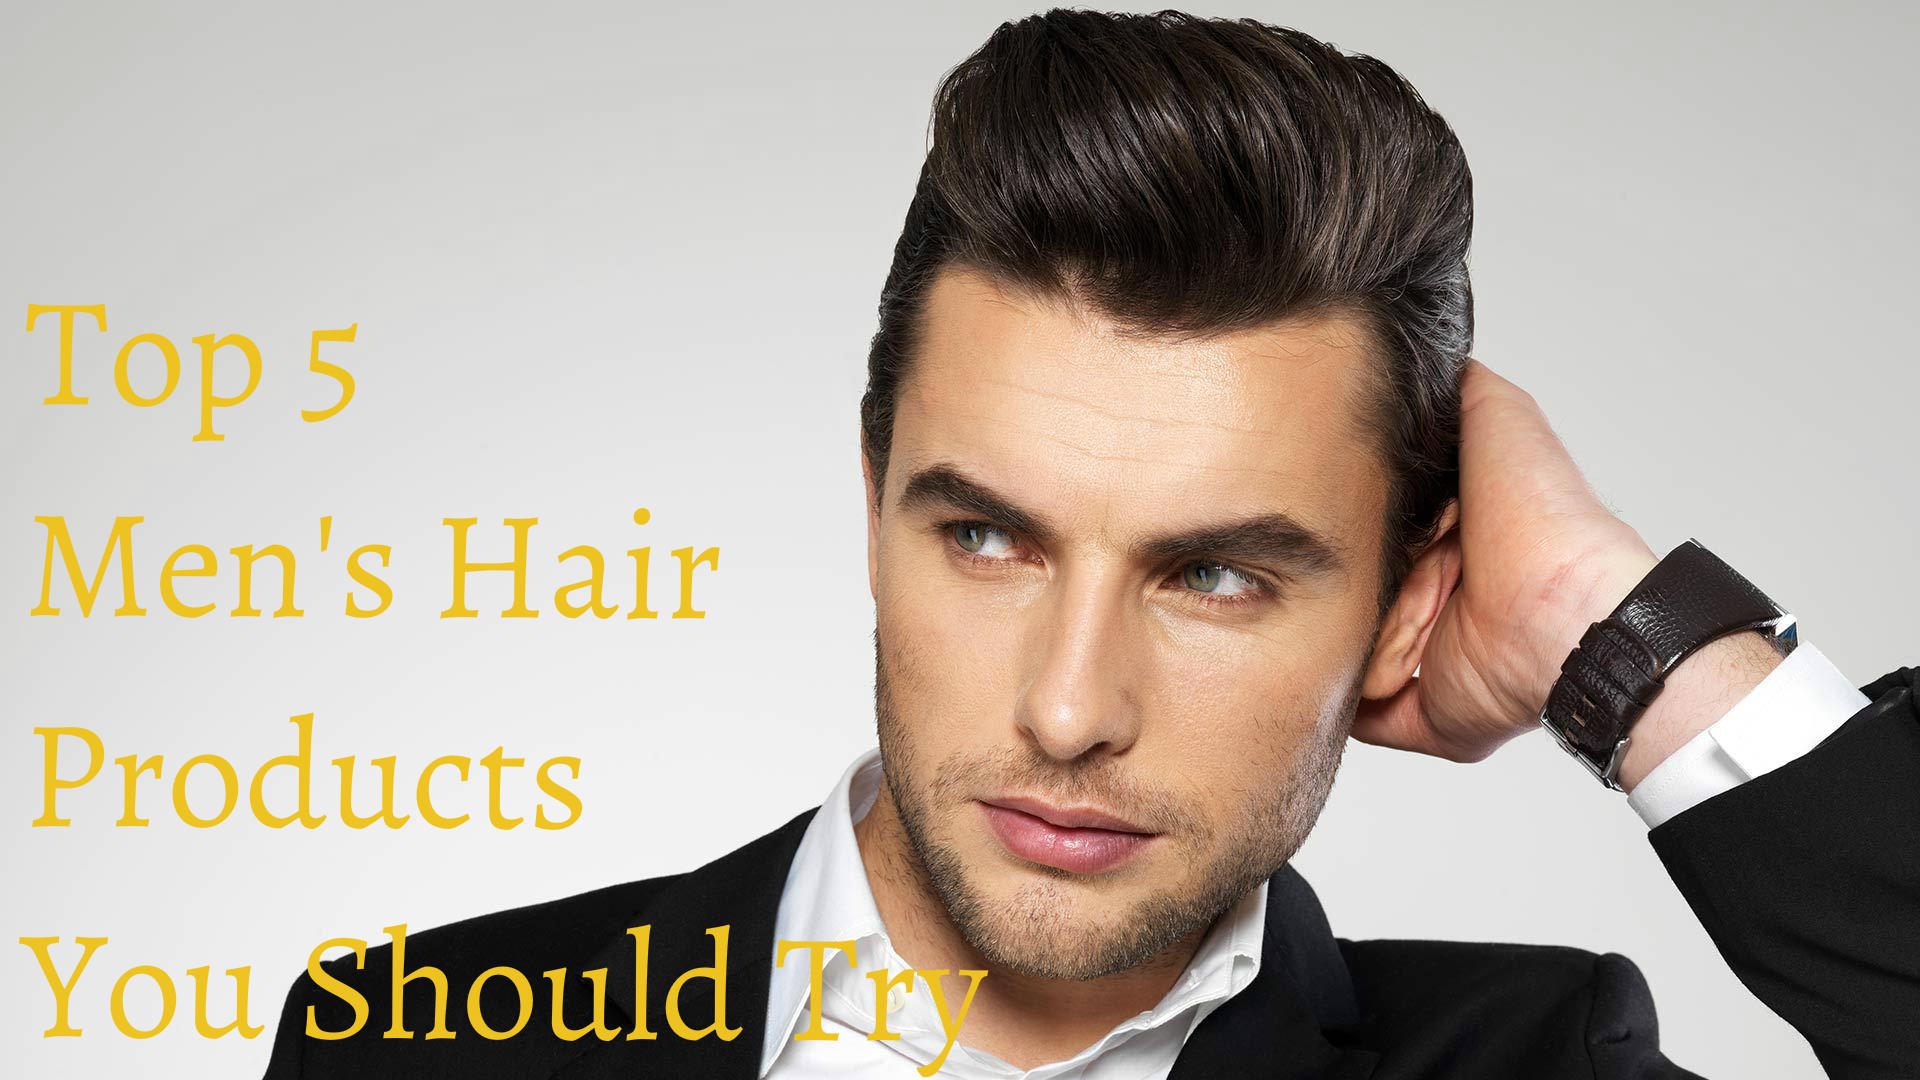 Top 5 Men\'s Hair Products You Should Try - The Emporium Barber